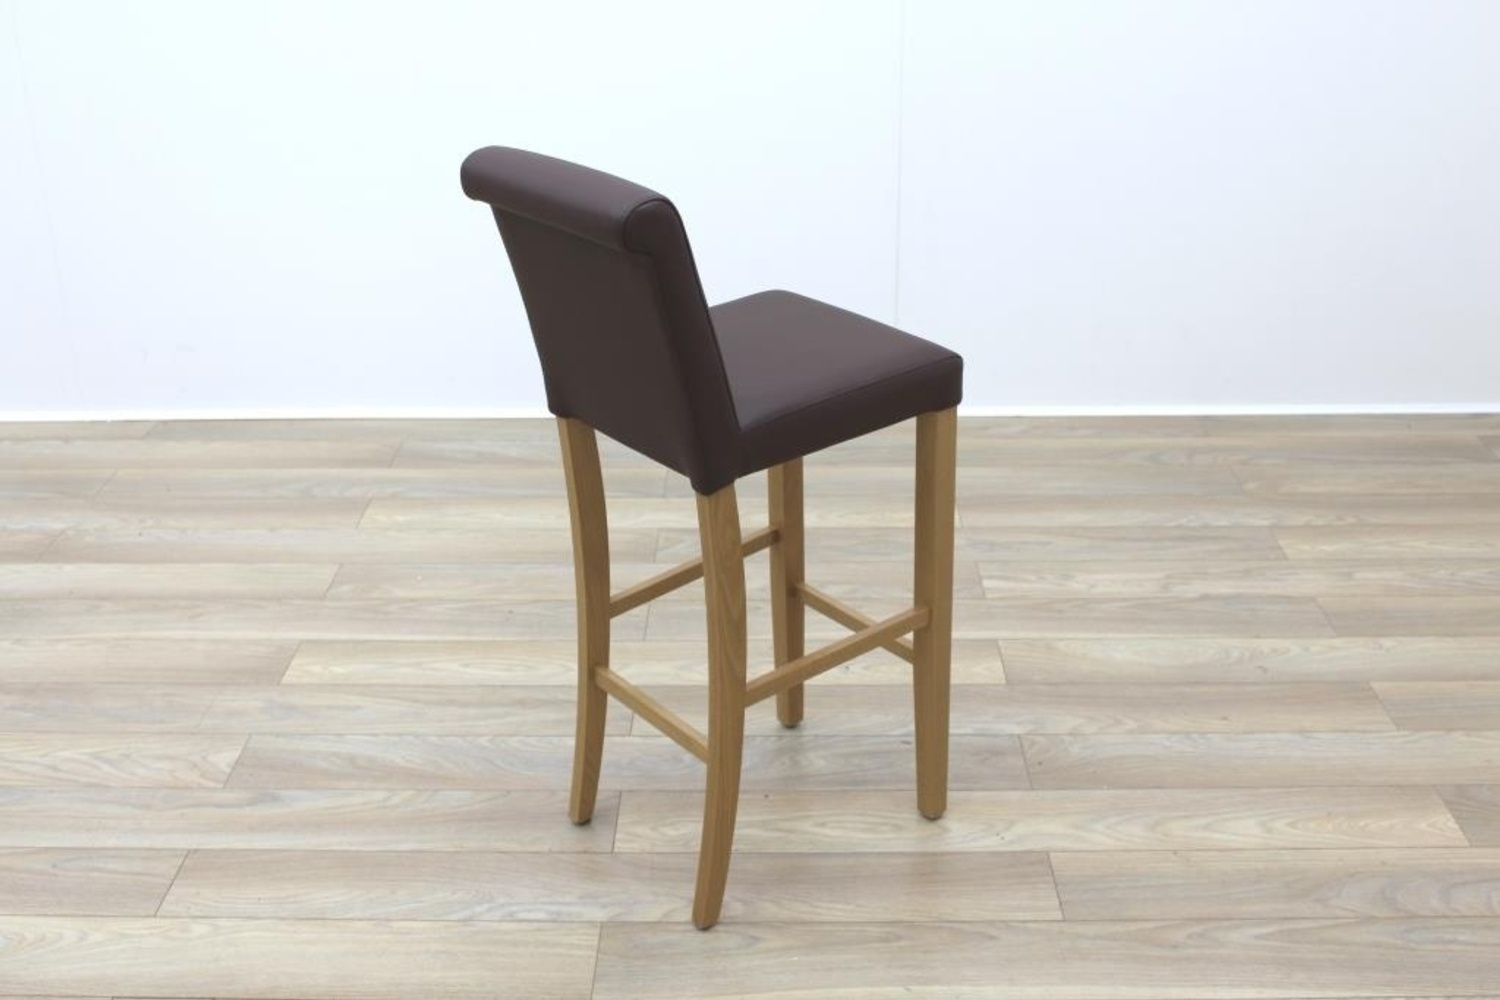 Restaurant Quality Bar Stools New Brown Leather Contract